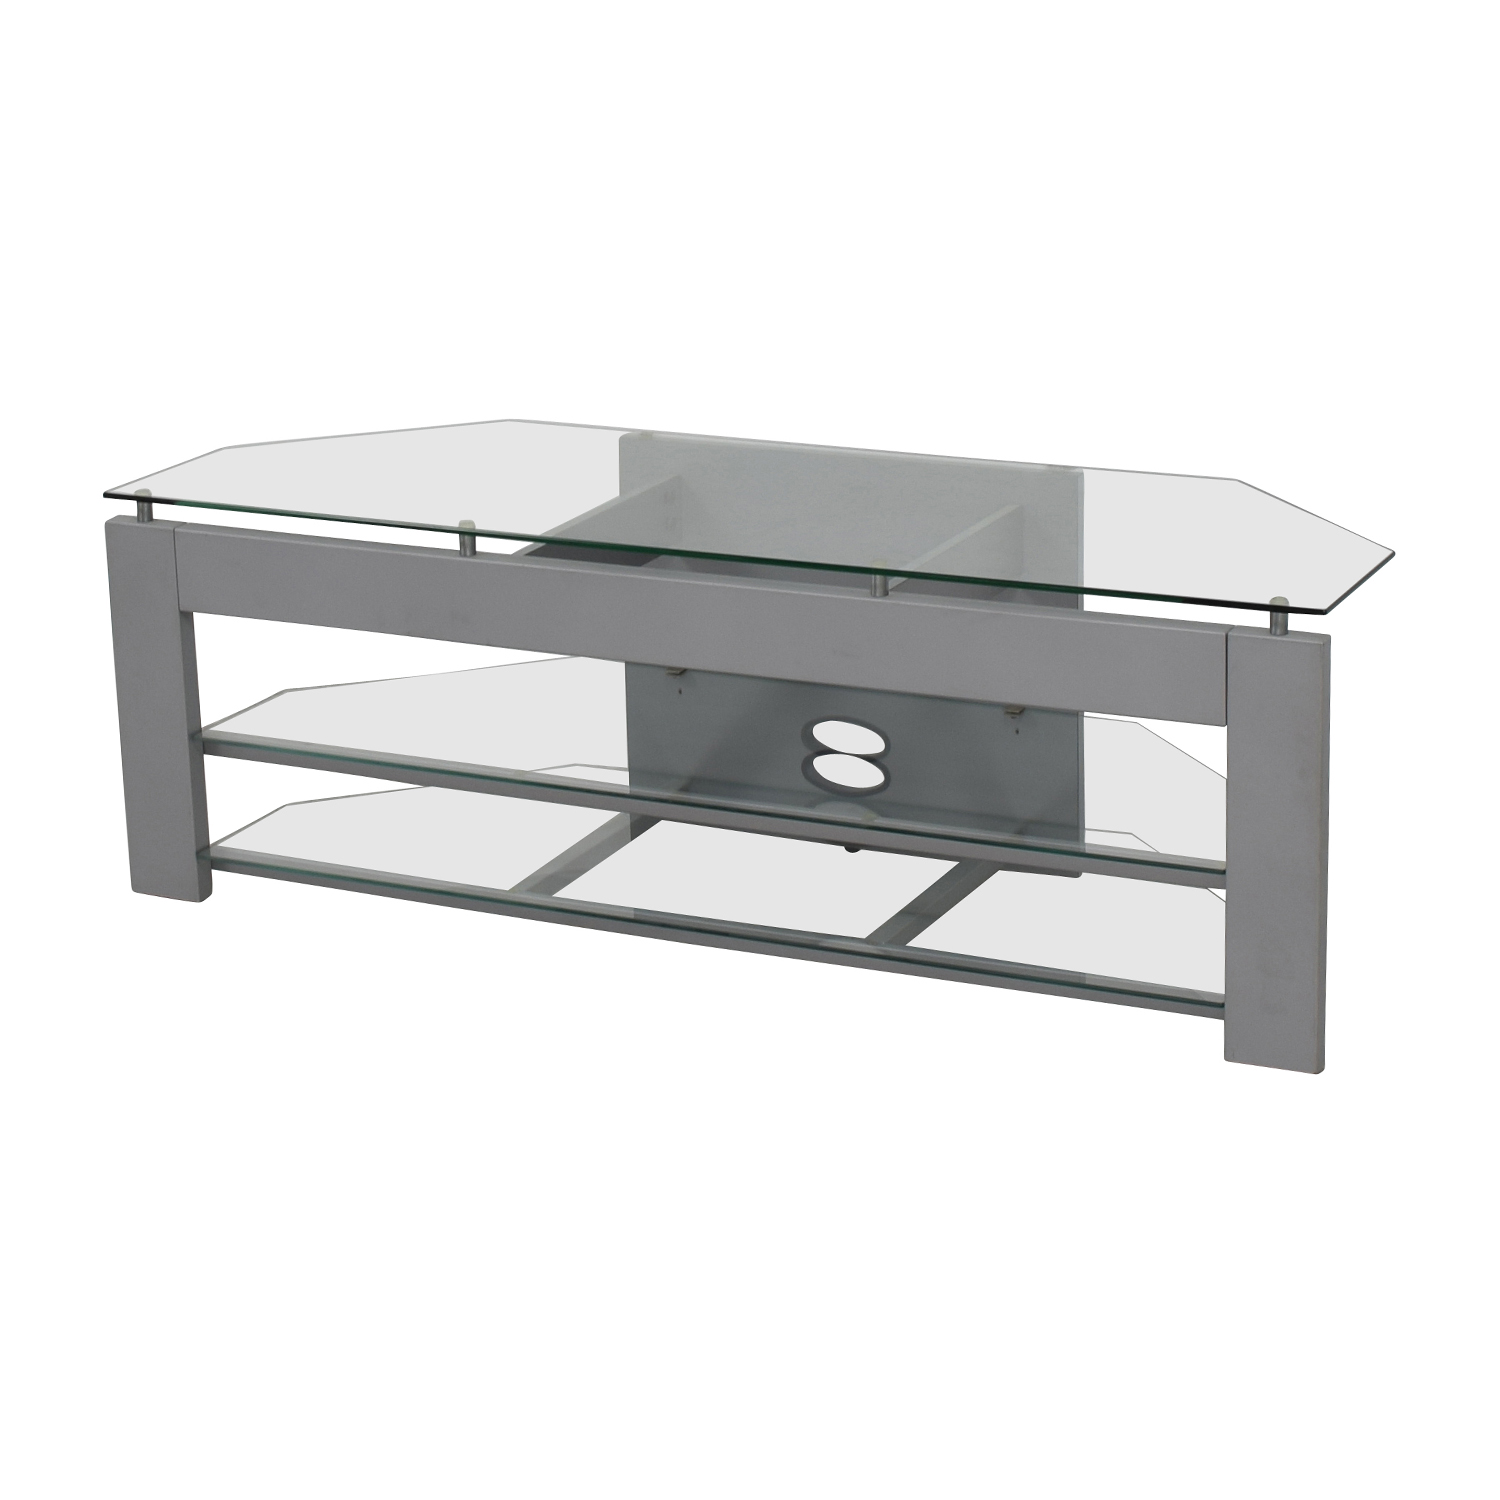 Silver and Glass TV Stand discount